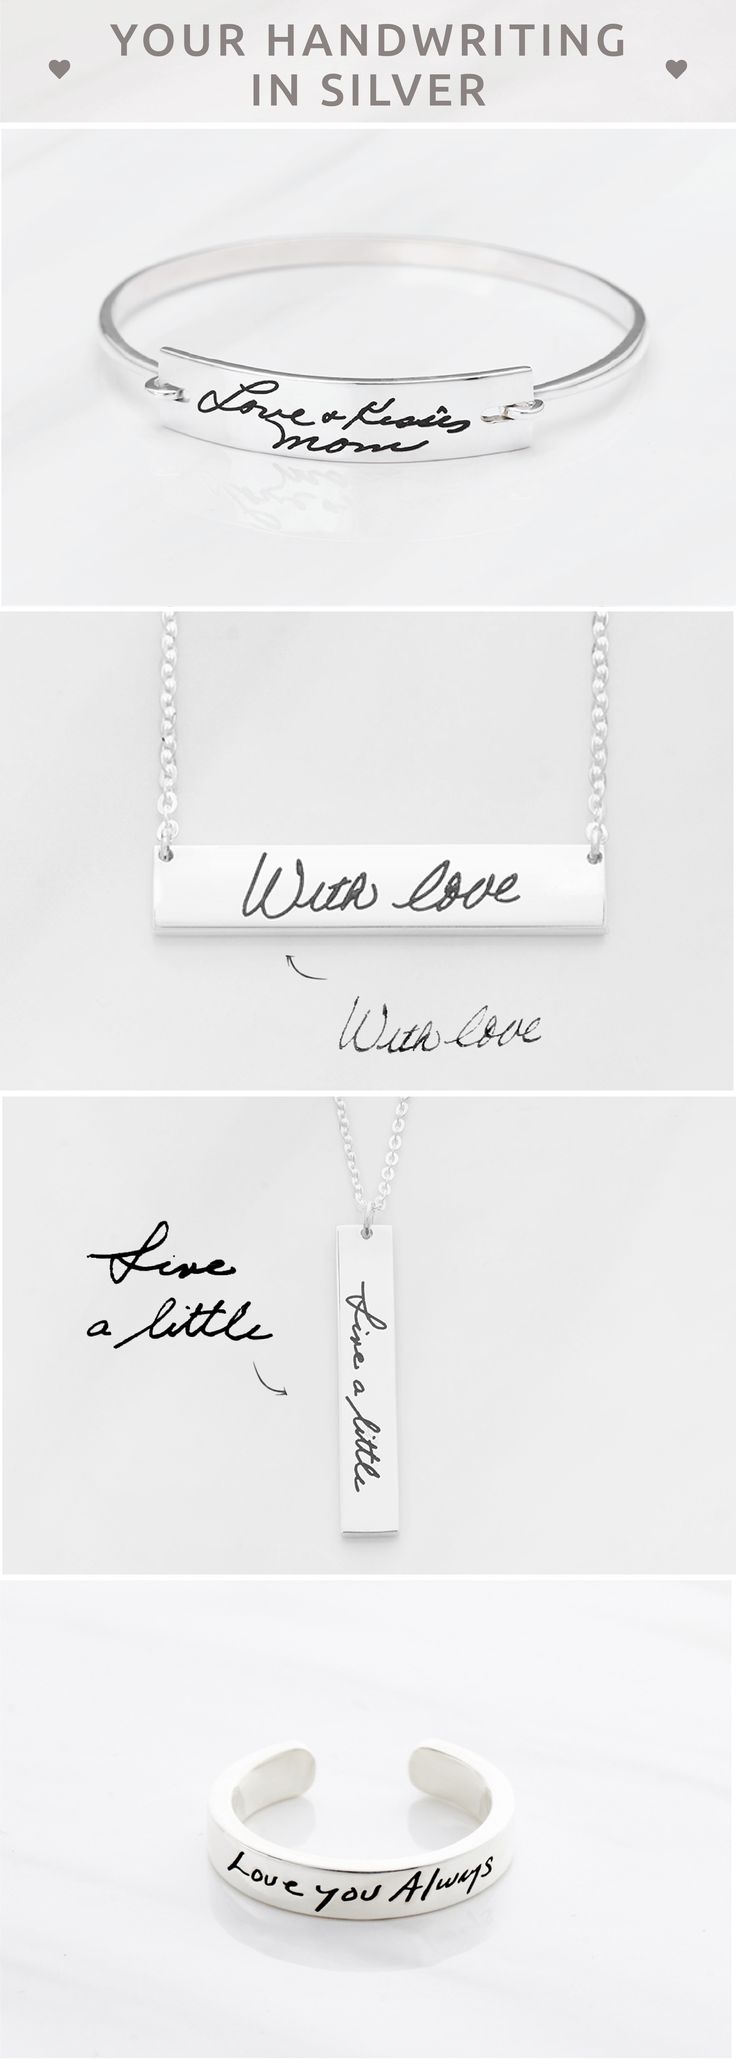 Handwriting jewelry • Actual handwriting jewelry • Personalized handwriting jewelry • Handwritten jewelry • Personalized handwriting jewelry • Handwriting gift • Handwriting bar necklace • Handwriting Necklace  • gift for a friend • best friend present ideas • best gift for friend • christmas gift ideas for friends • gifts for mom birthday • gifts for mothers day • birthday gift ideas for mom • mom gifts • gift ideas for mother in law christmas gifts